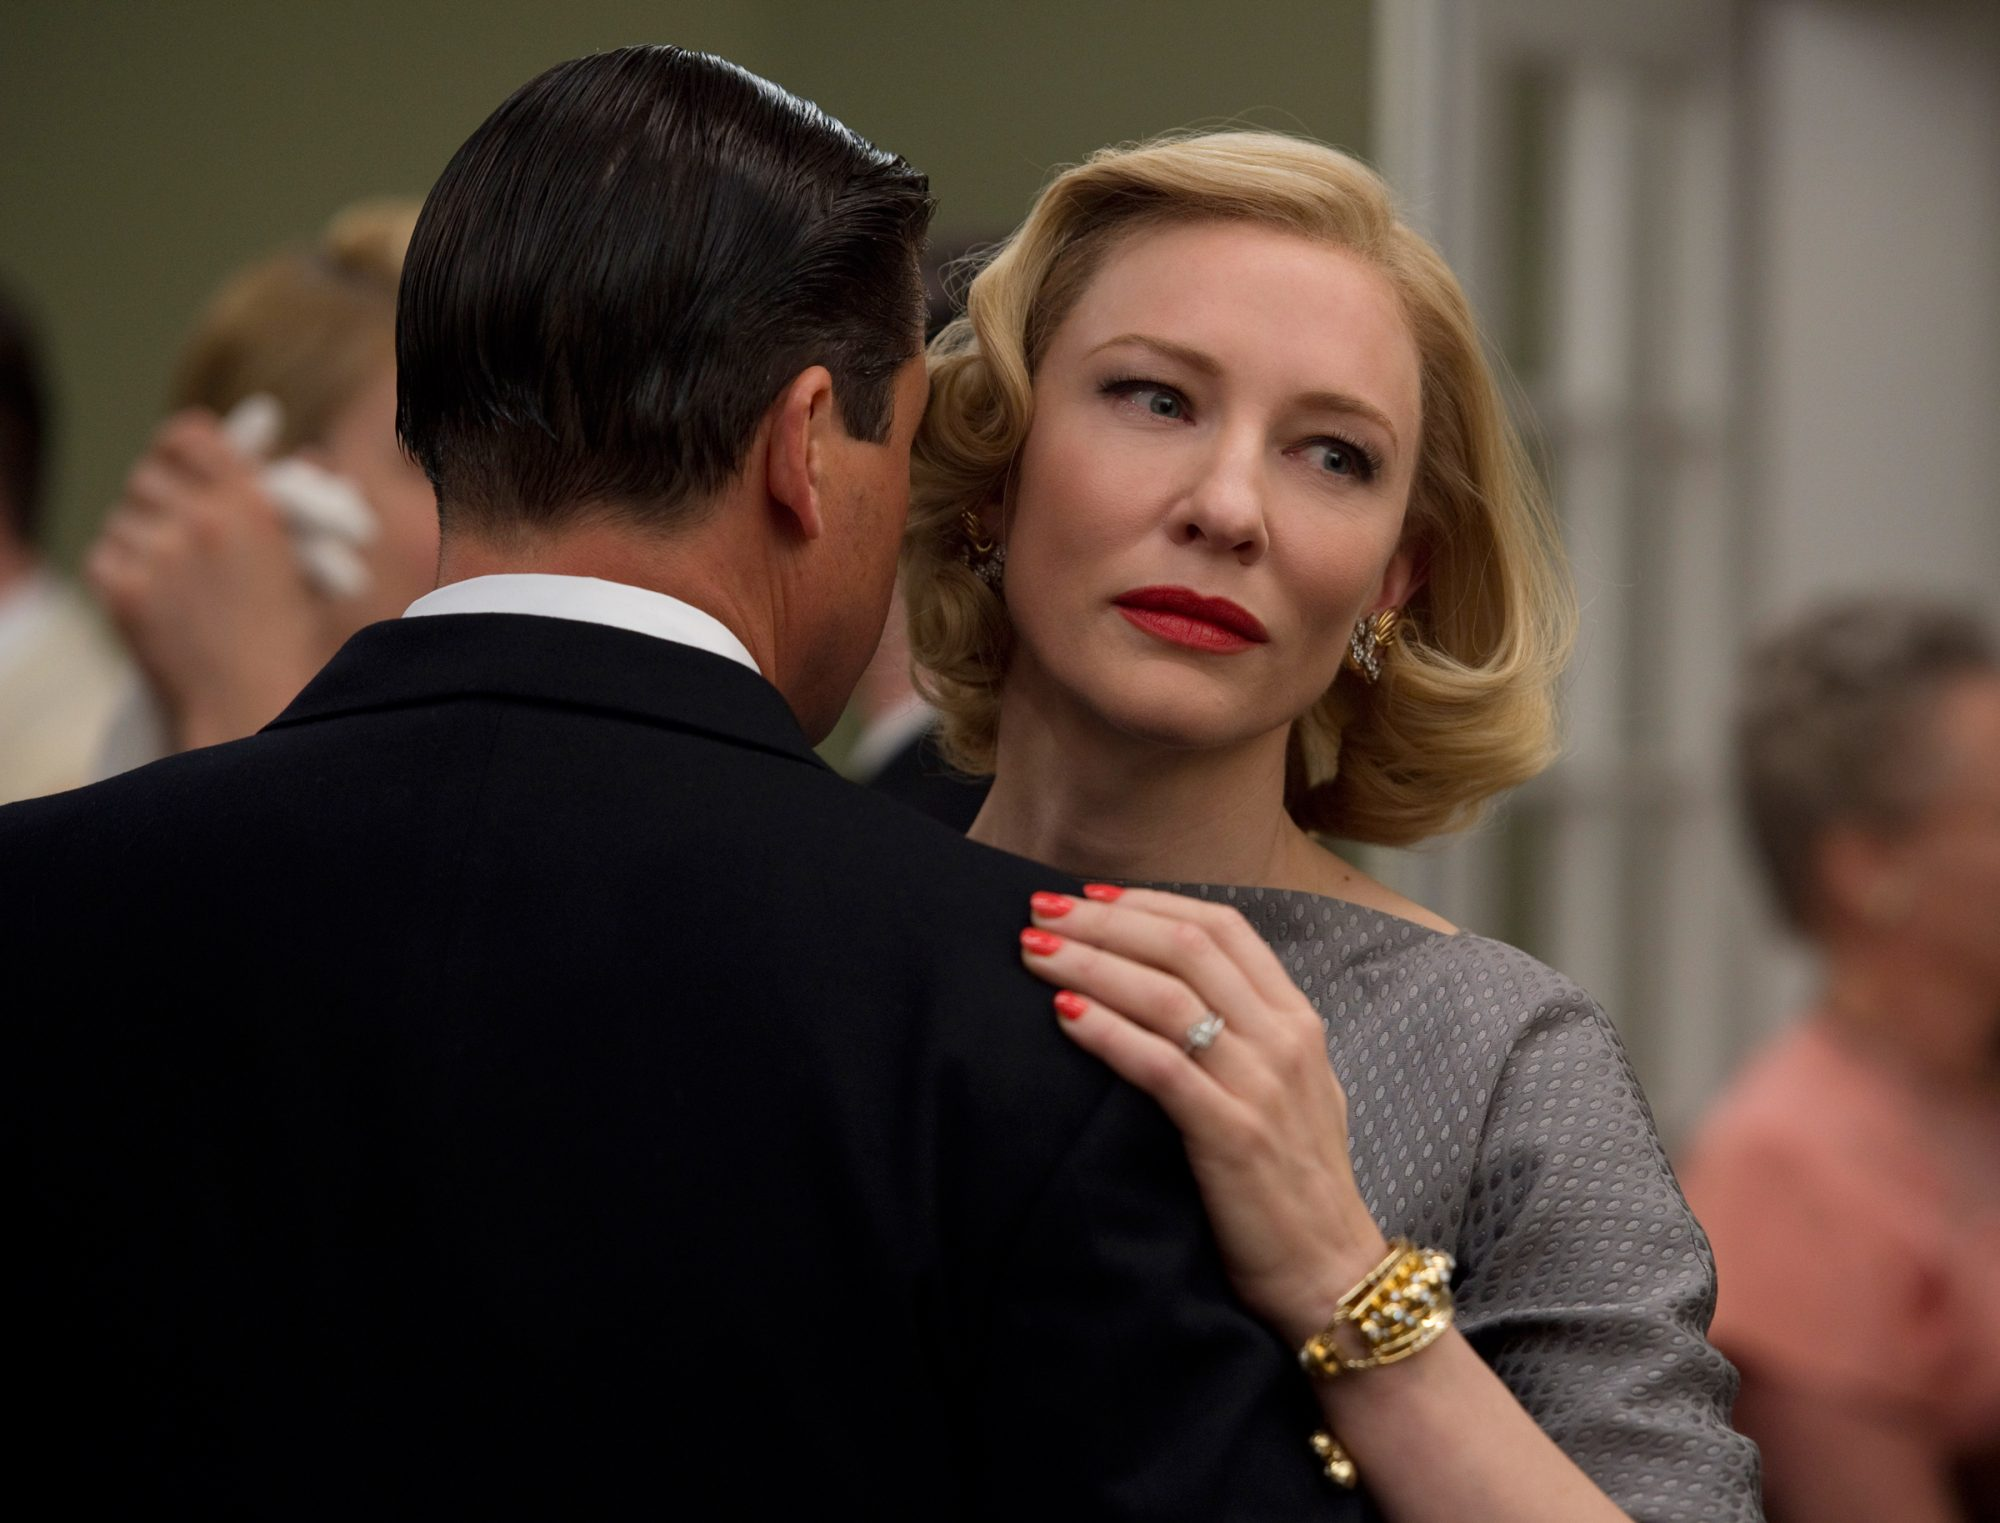 Everything Carol wears is real.